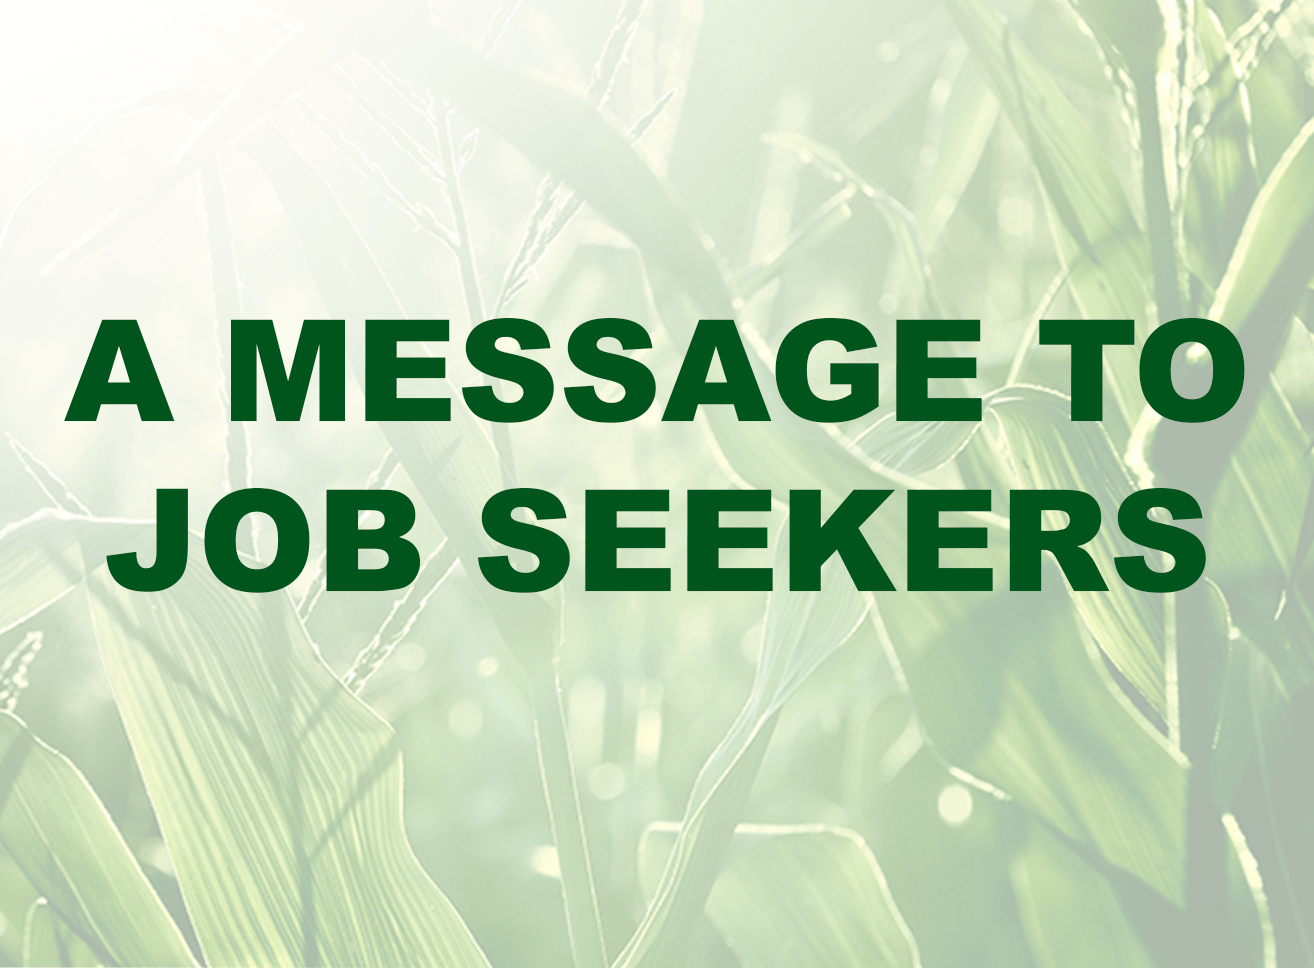 A message to job seekers from the Ag1Source recruiters team